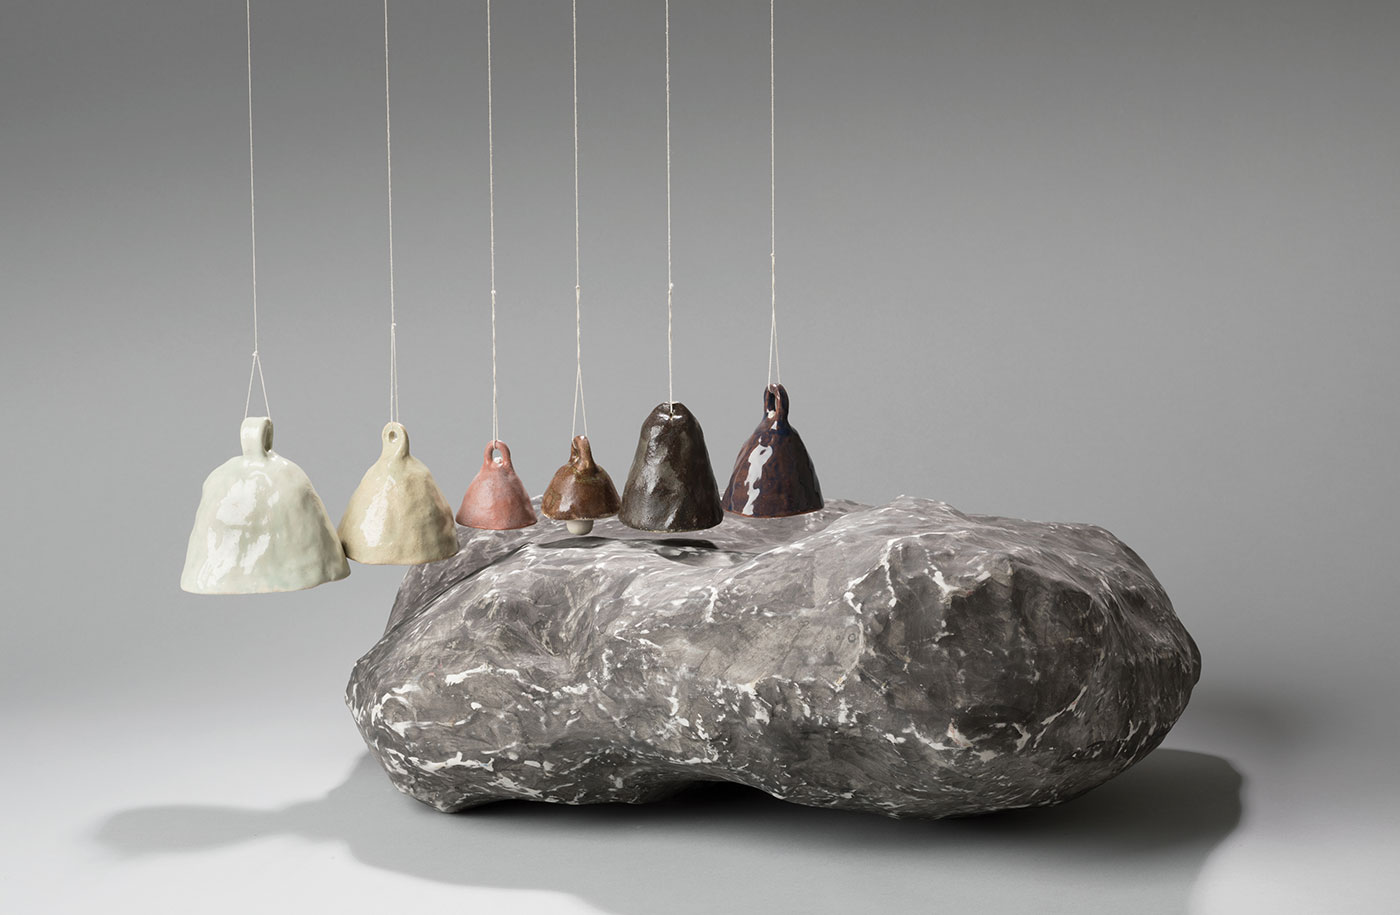 Liu Yuan - Surrounding, Every Day and Things: Bell Installation III